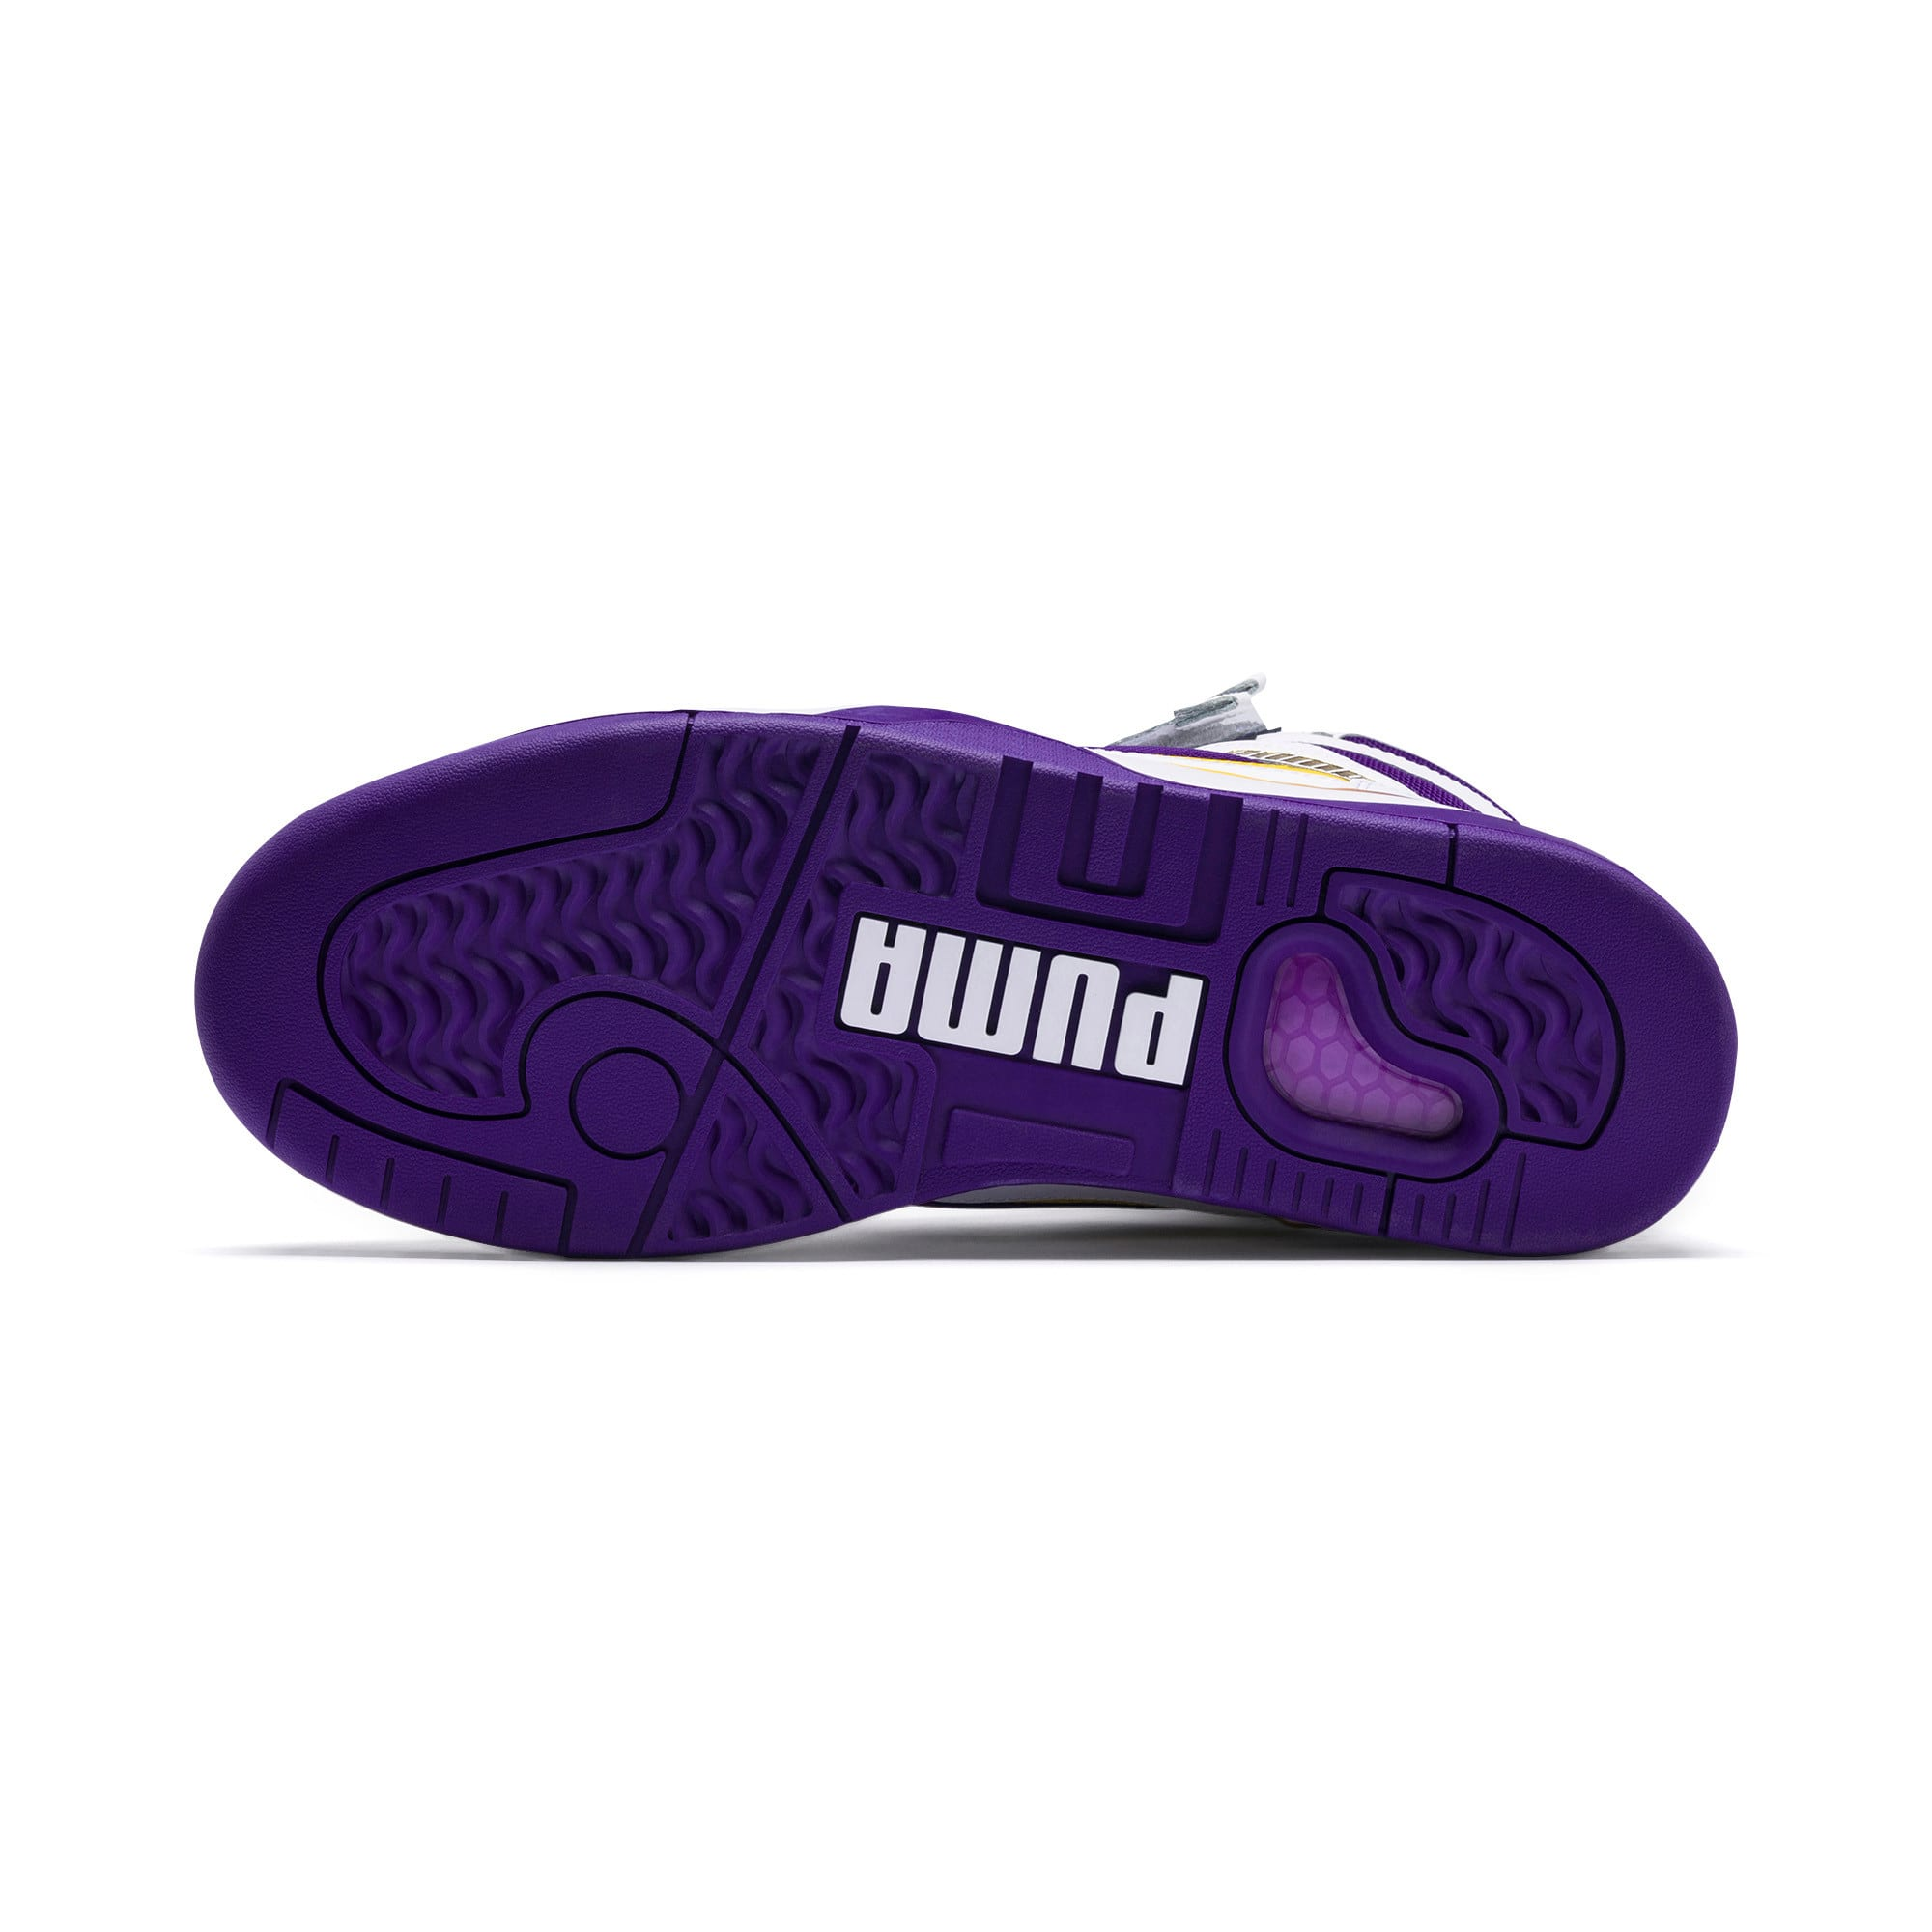 Thumbnail 3 of Palace Guard Mid Finals Sneakers, Puma White-Prism Violet-, medium